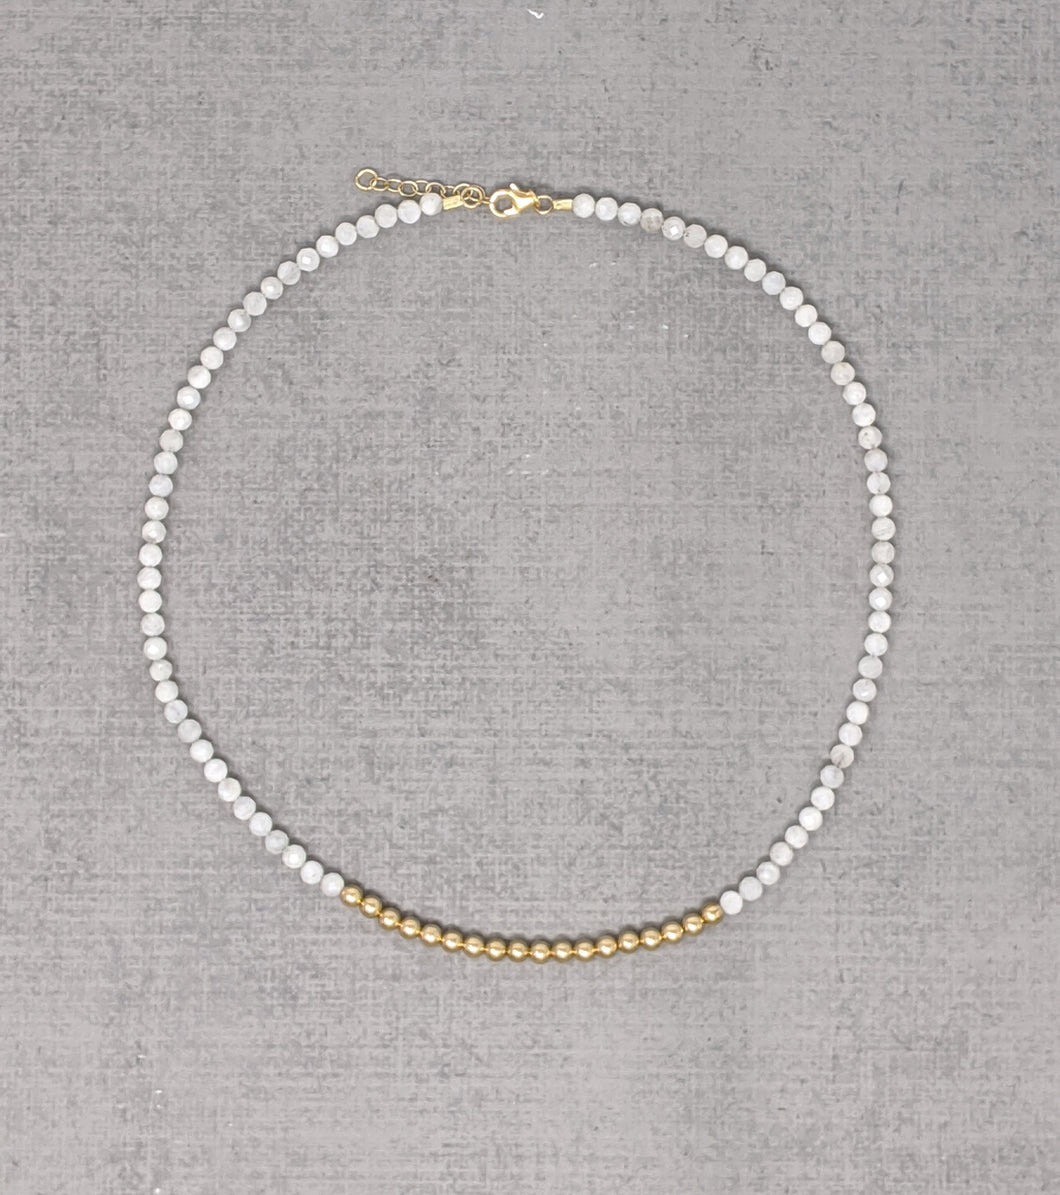 yellow gold faceted moonstone necklace